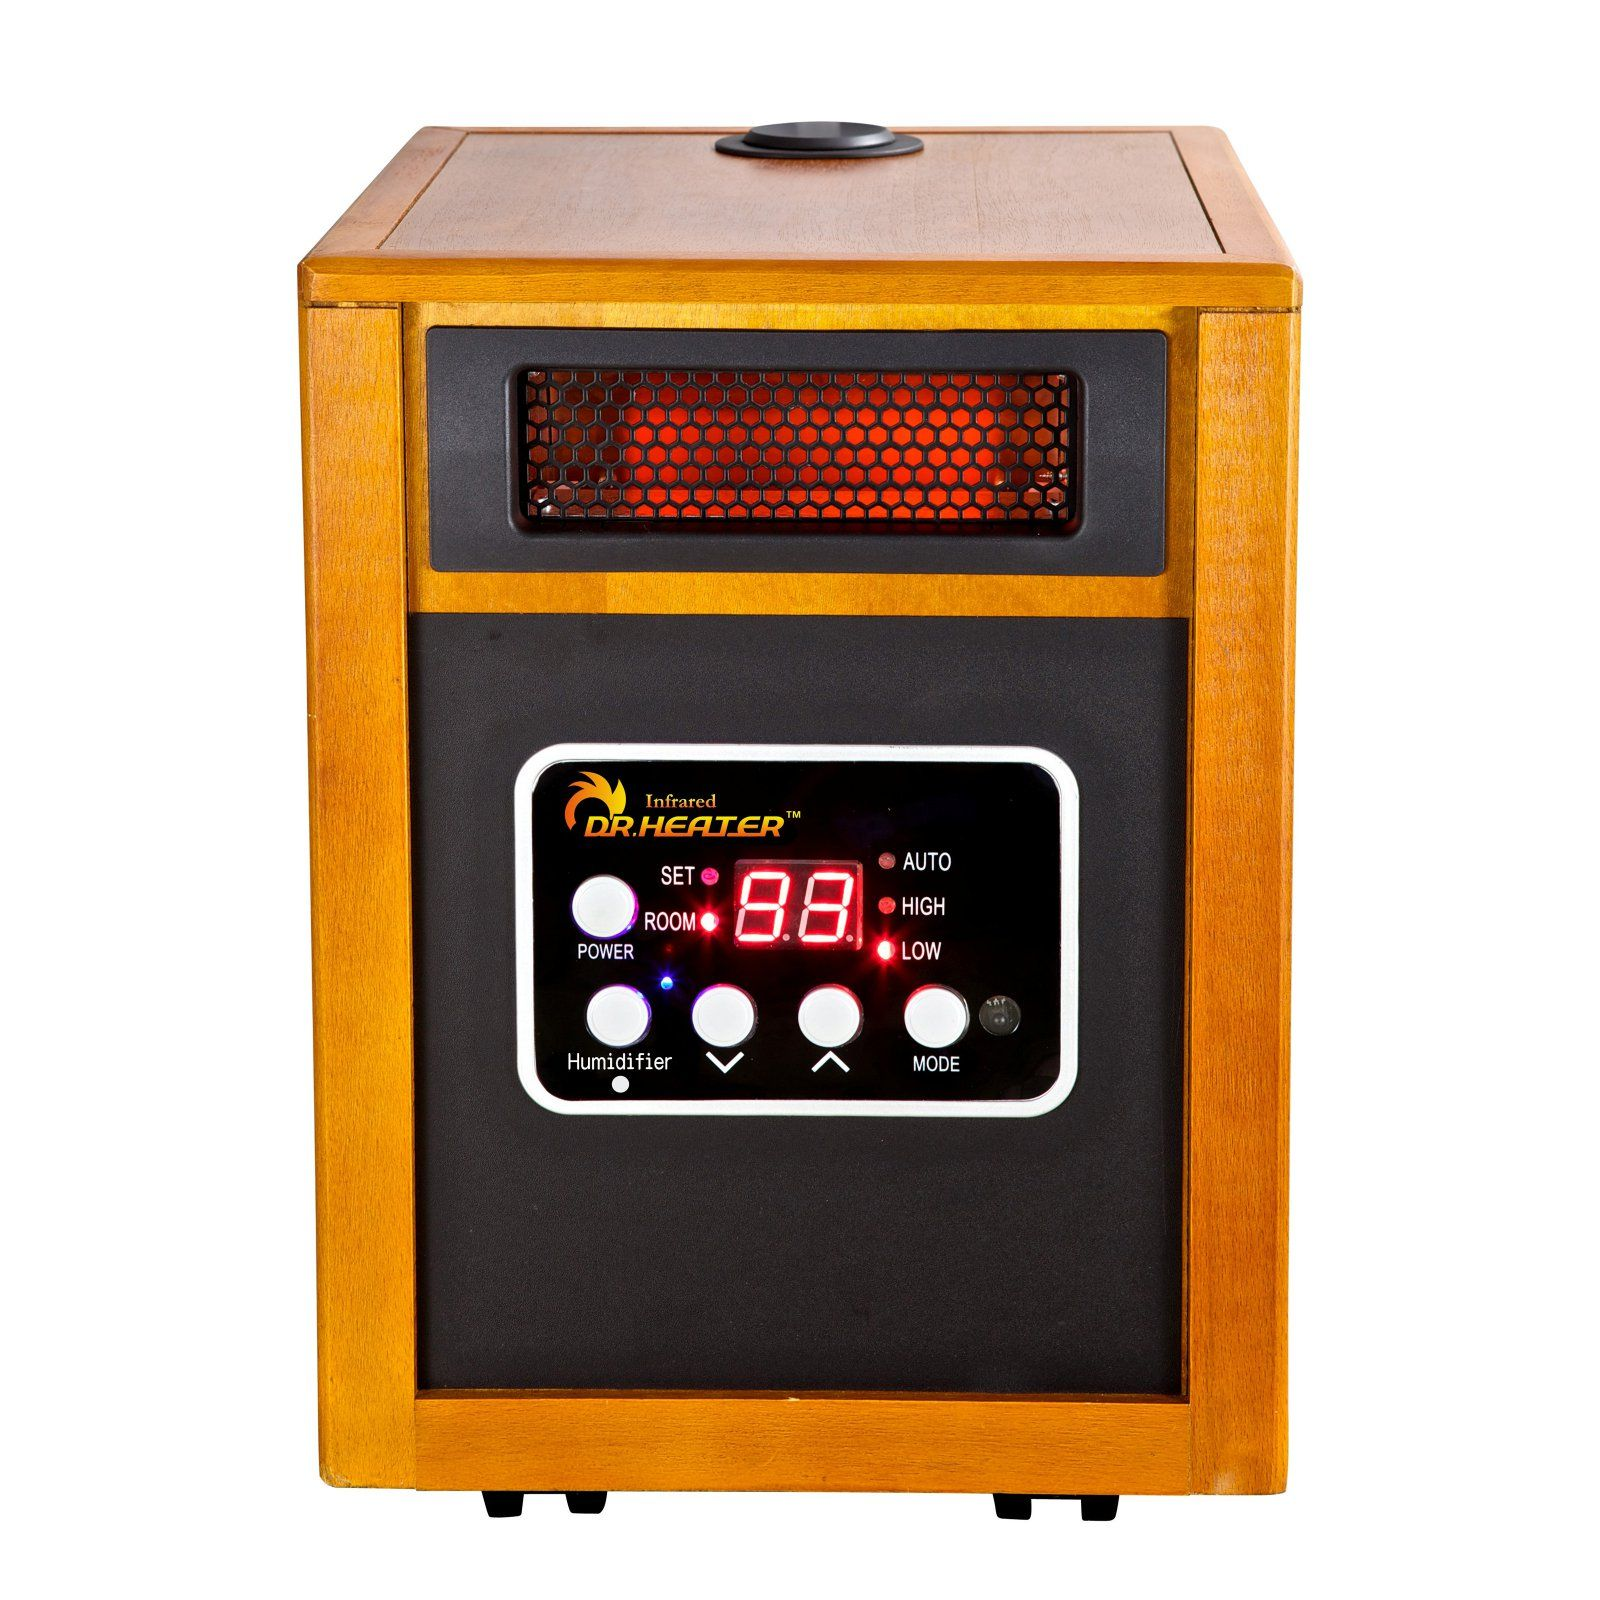 Dr. Infrared Heater DR968H Portable Space Heater with